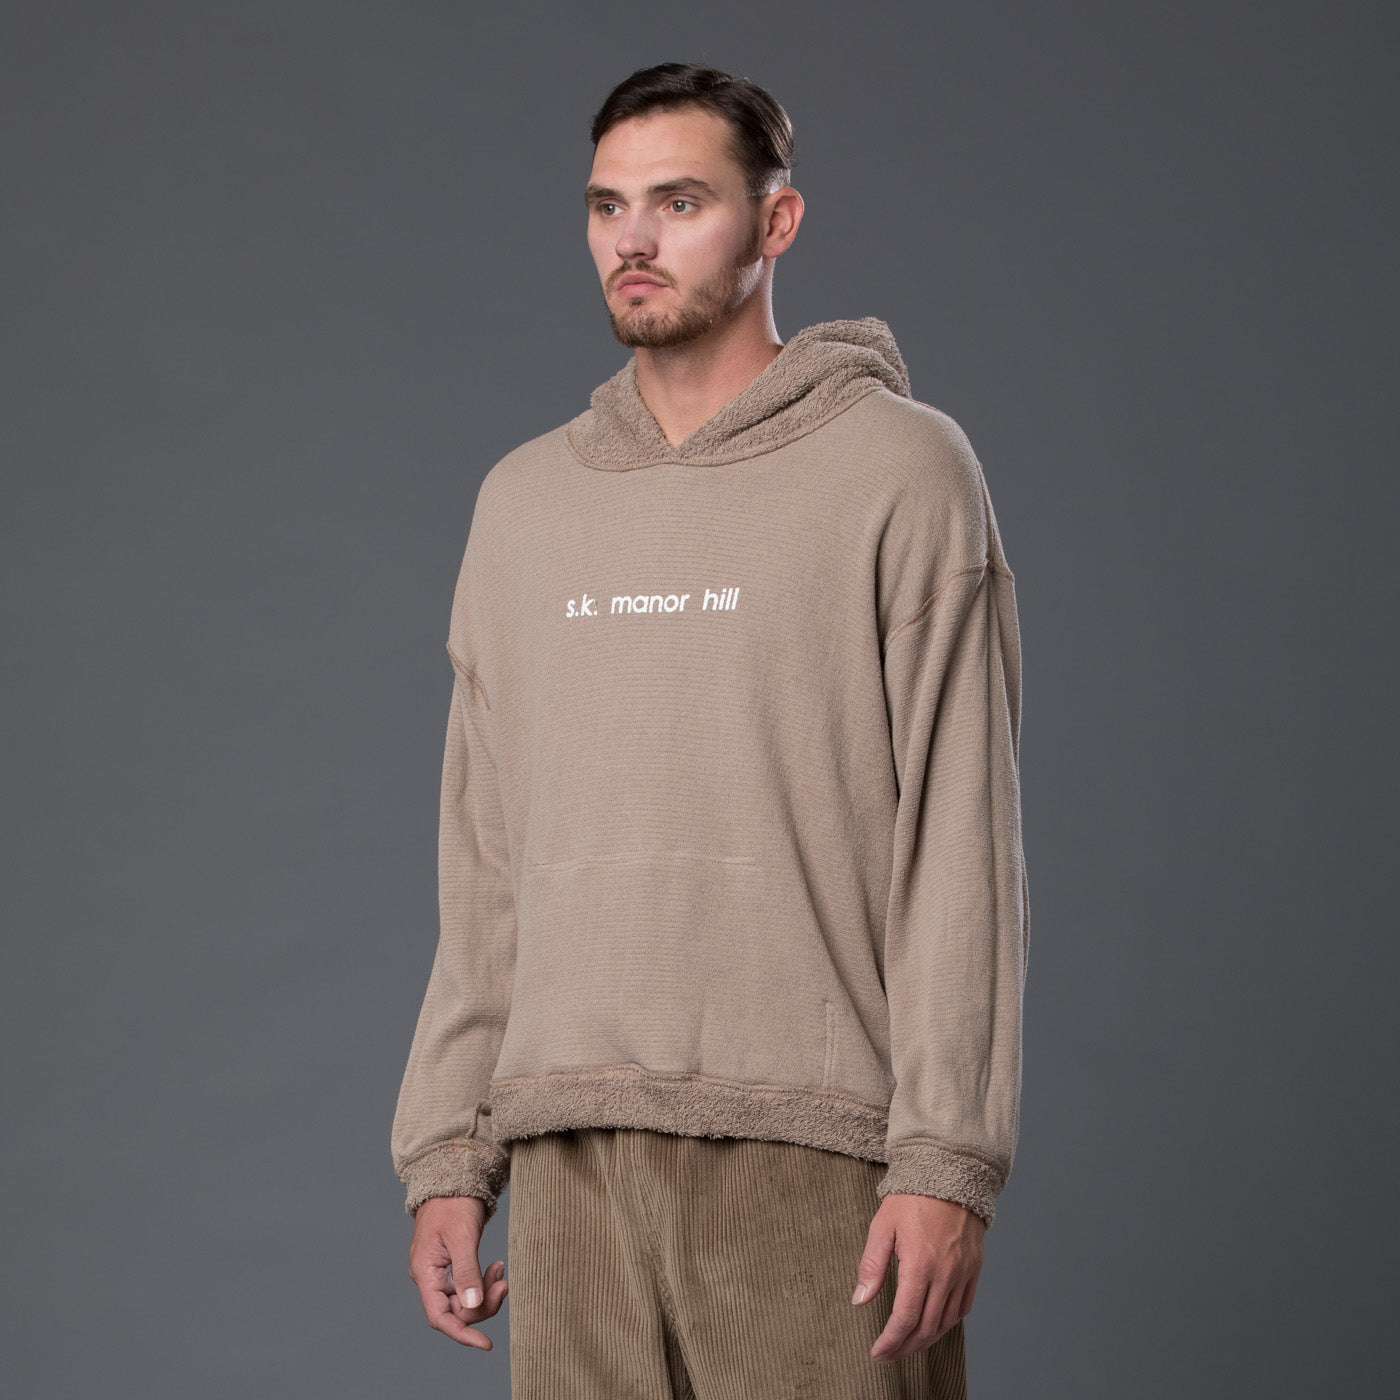 s.k. manor hill Reversible Hoodie